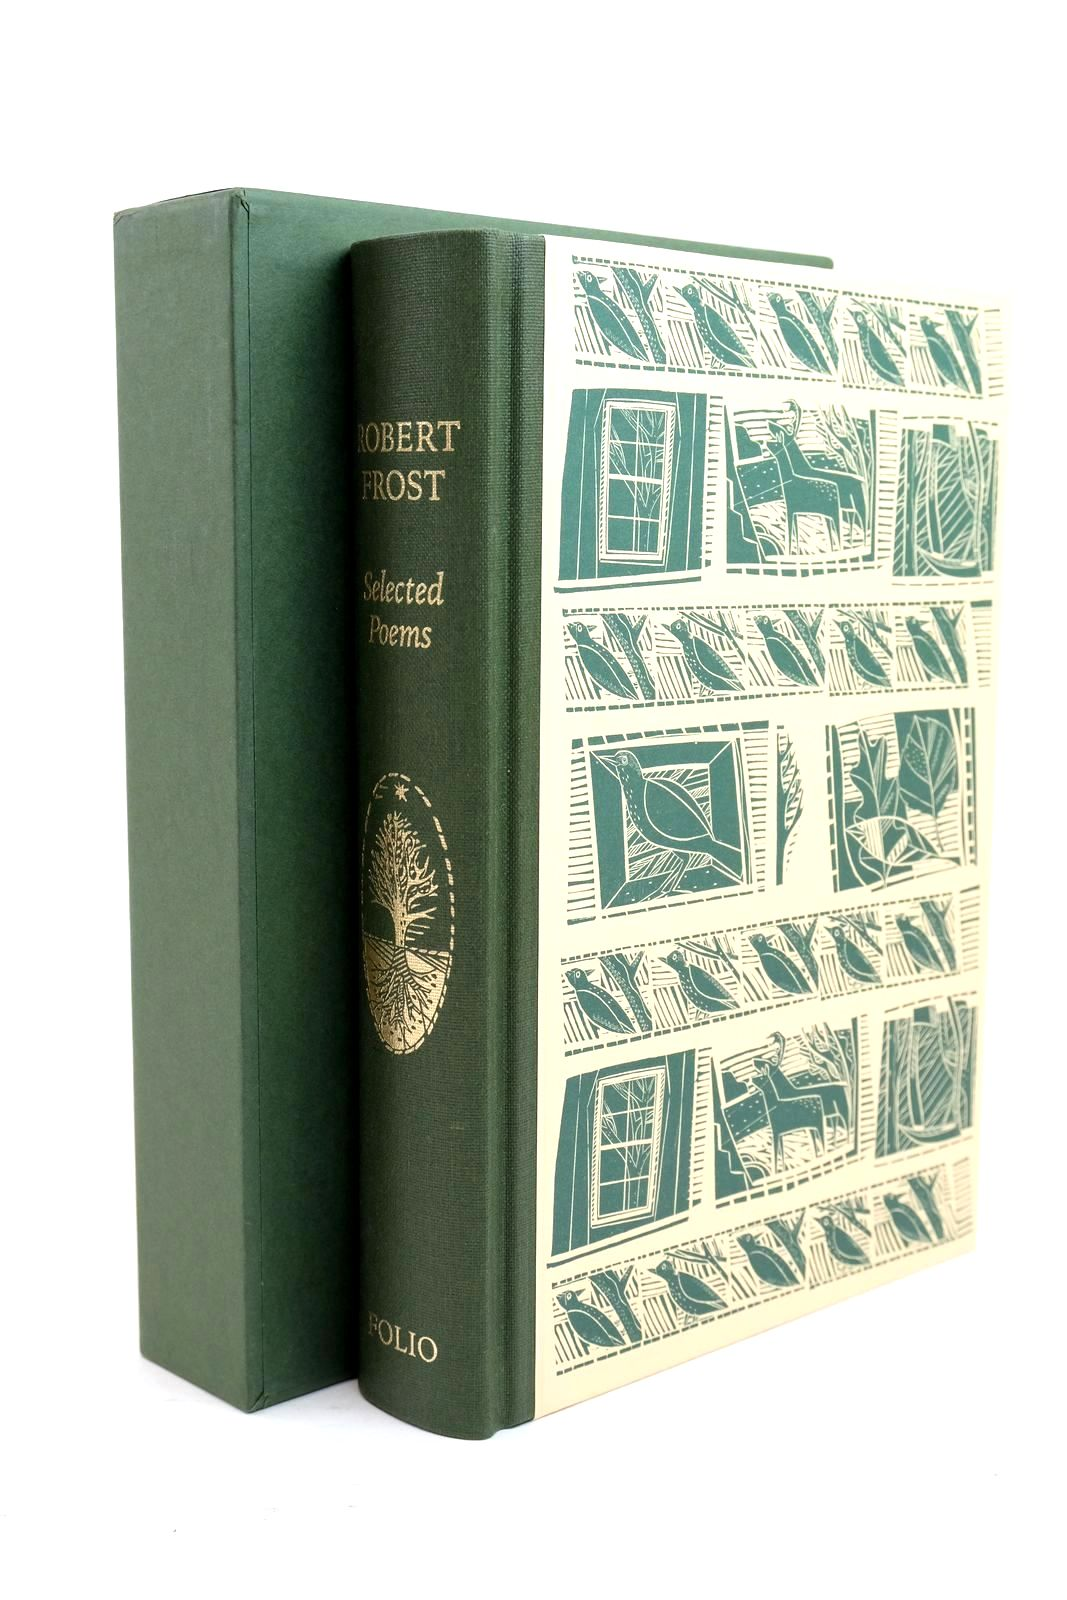 Photo of SELECTED POEMS written by Frost, Robert illustrated by Gibbs, Jonathan published by Folio Society (STOCK CODE: 1321129)  for sale by Stella & Rose's Books